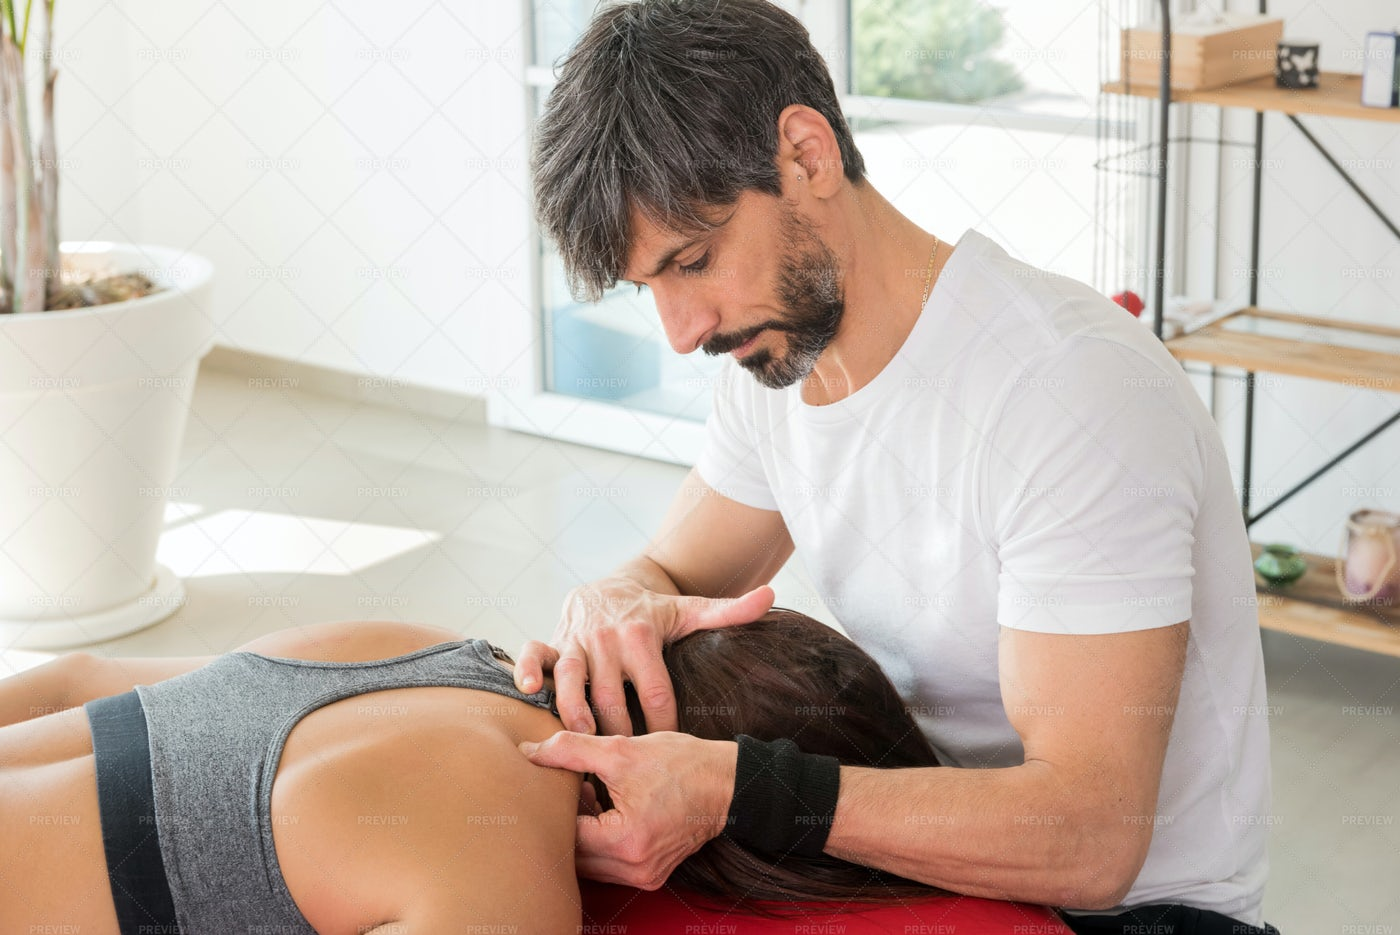 Performing Trigger Point Treatment: Stock Photos